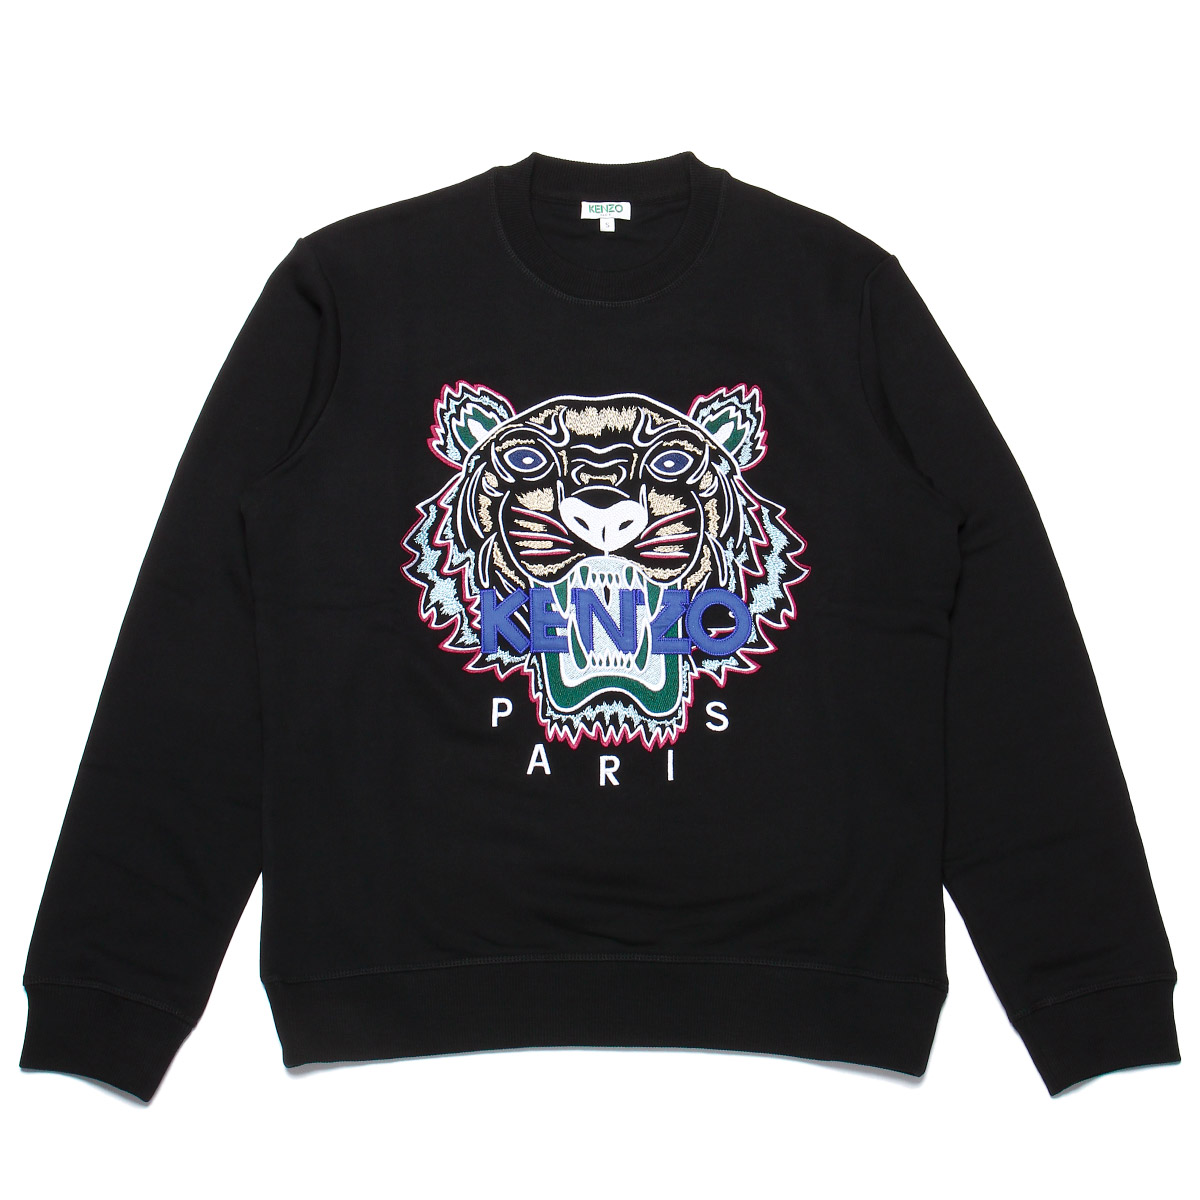 d0a9ce11d3e Kenzo KENZO sweat shirt men 5SW0014XA 99 long sleeves sweat shirt BLACK  black ...